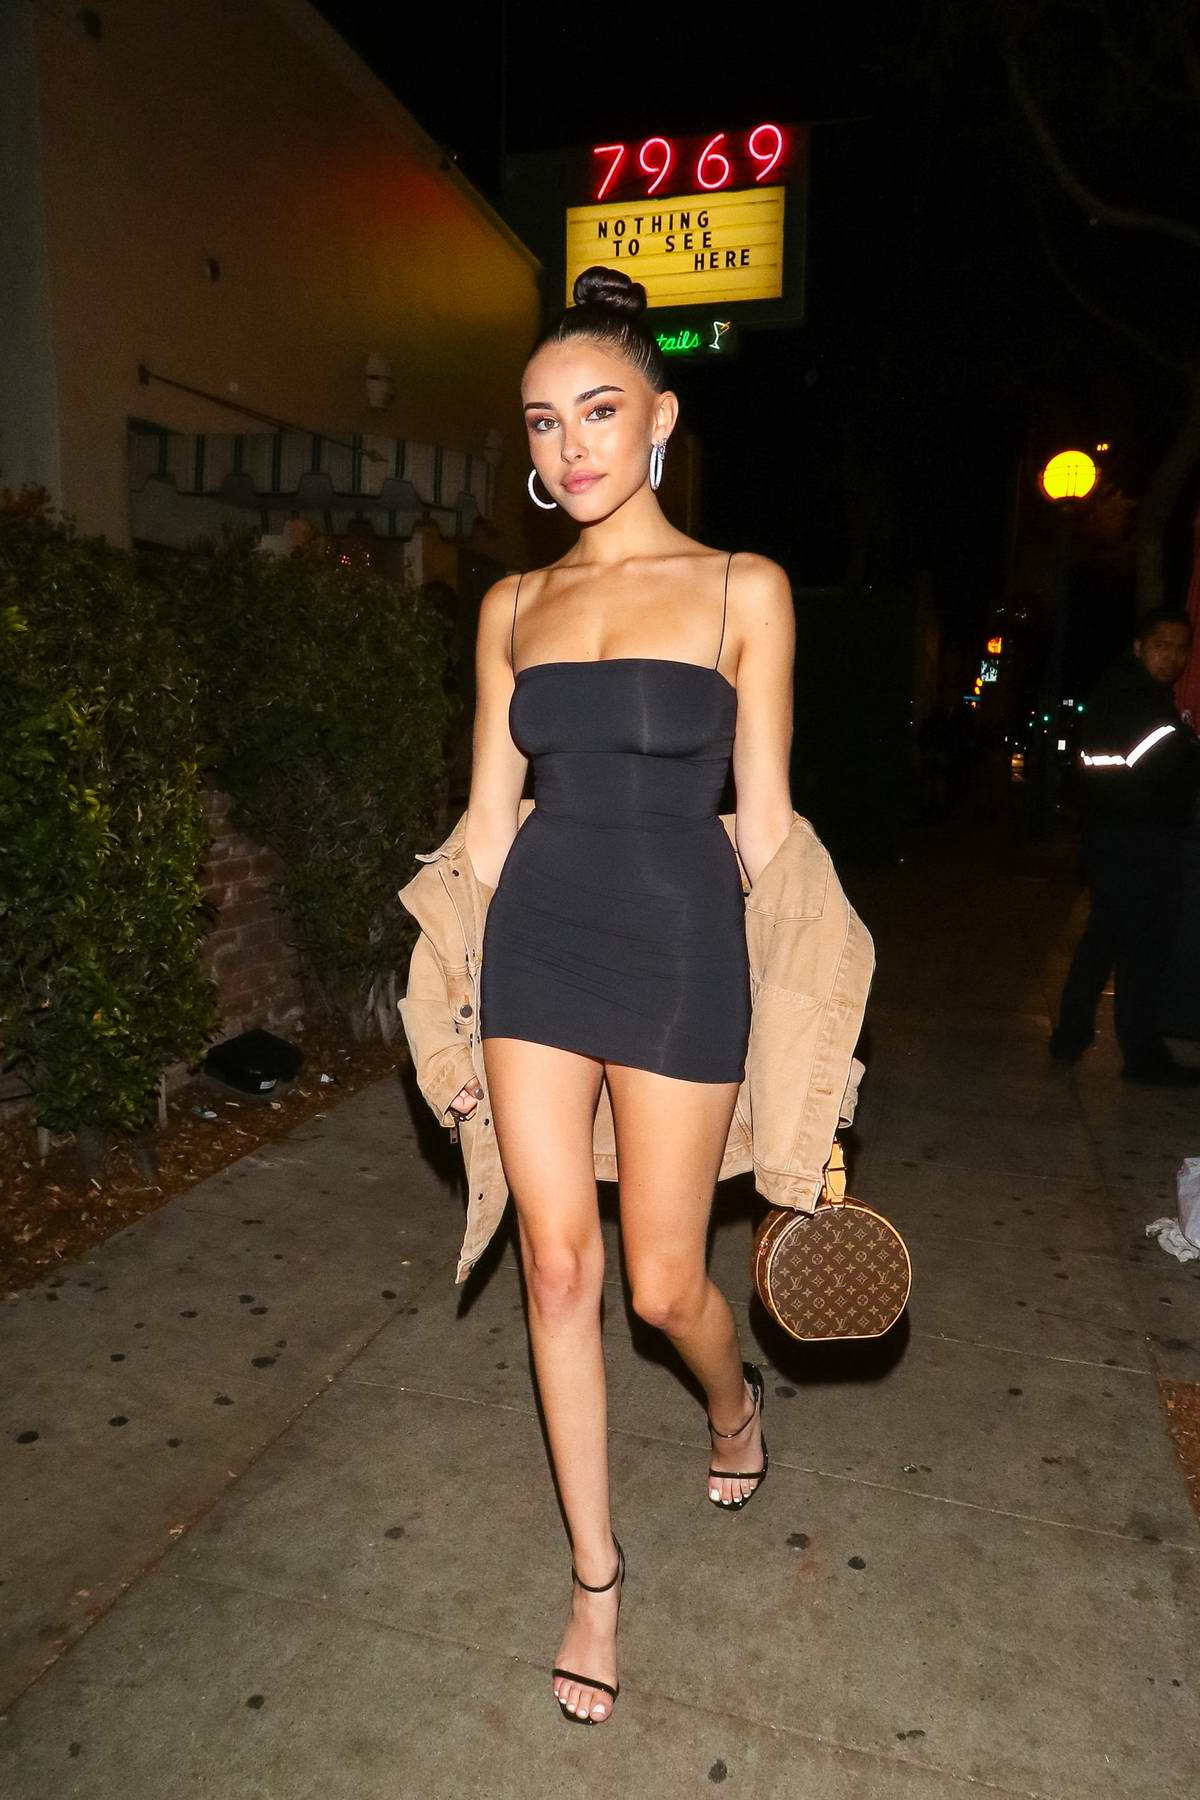 Madison Beer seen wearing a form-fitting black minidress during a night out at Delilah in West Hollywood, Los Angeles